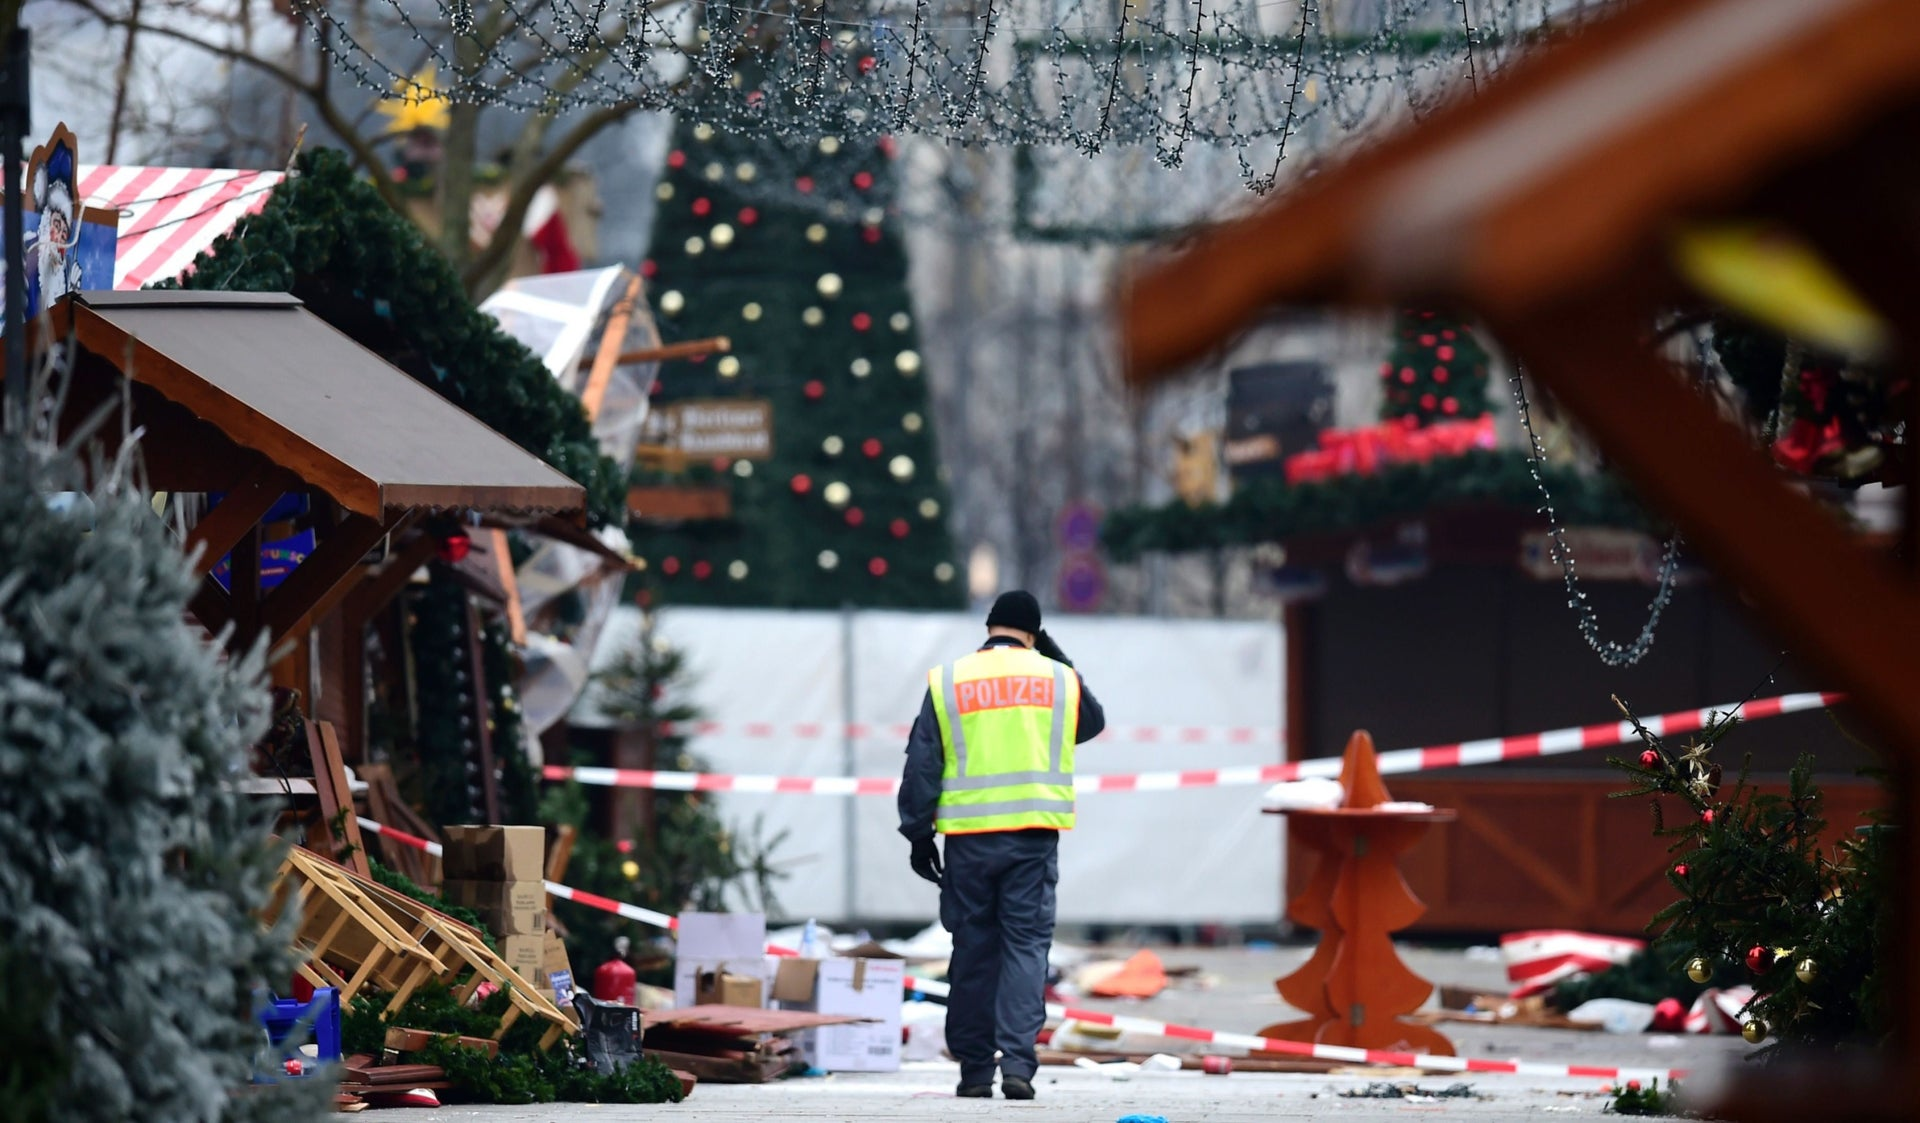 A policeman walks at the Christmas market near the Kaiser-Wilhelm-Gedaechtniskirche (Kaiser Wilhelm Memorial Church), the day after a terror attack, in central Berlin, on December 20, 2016.